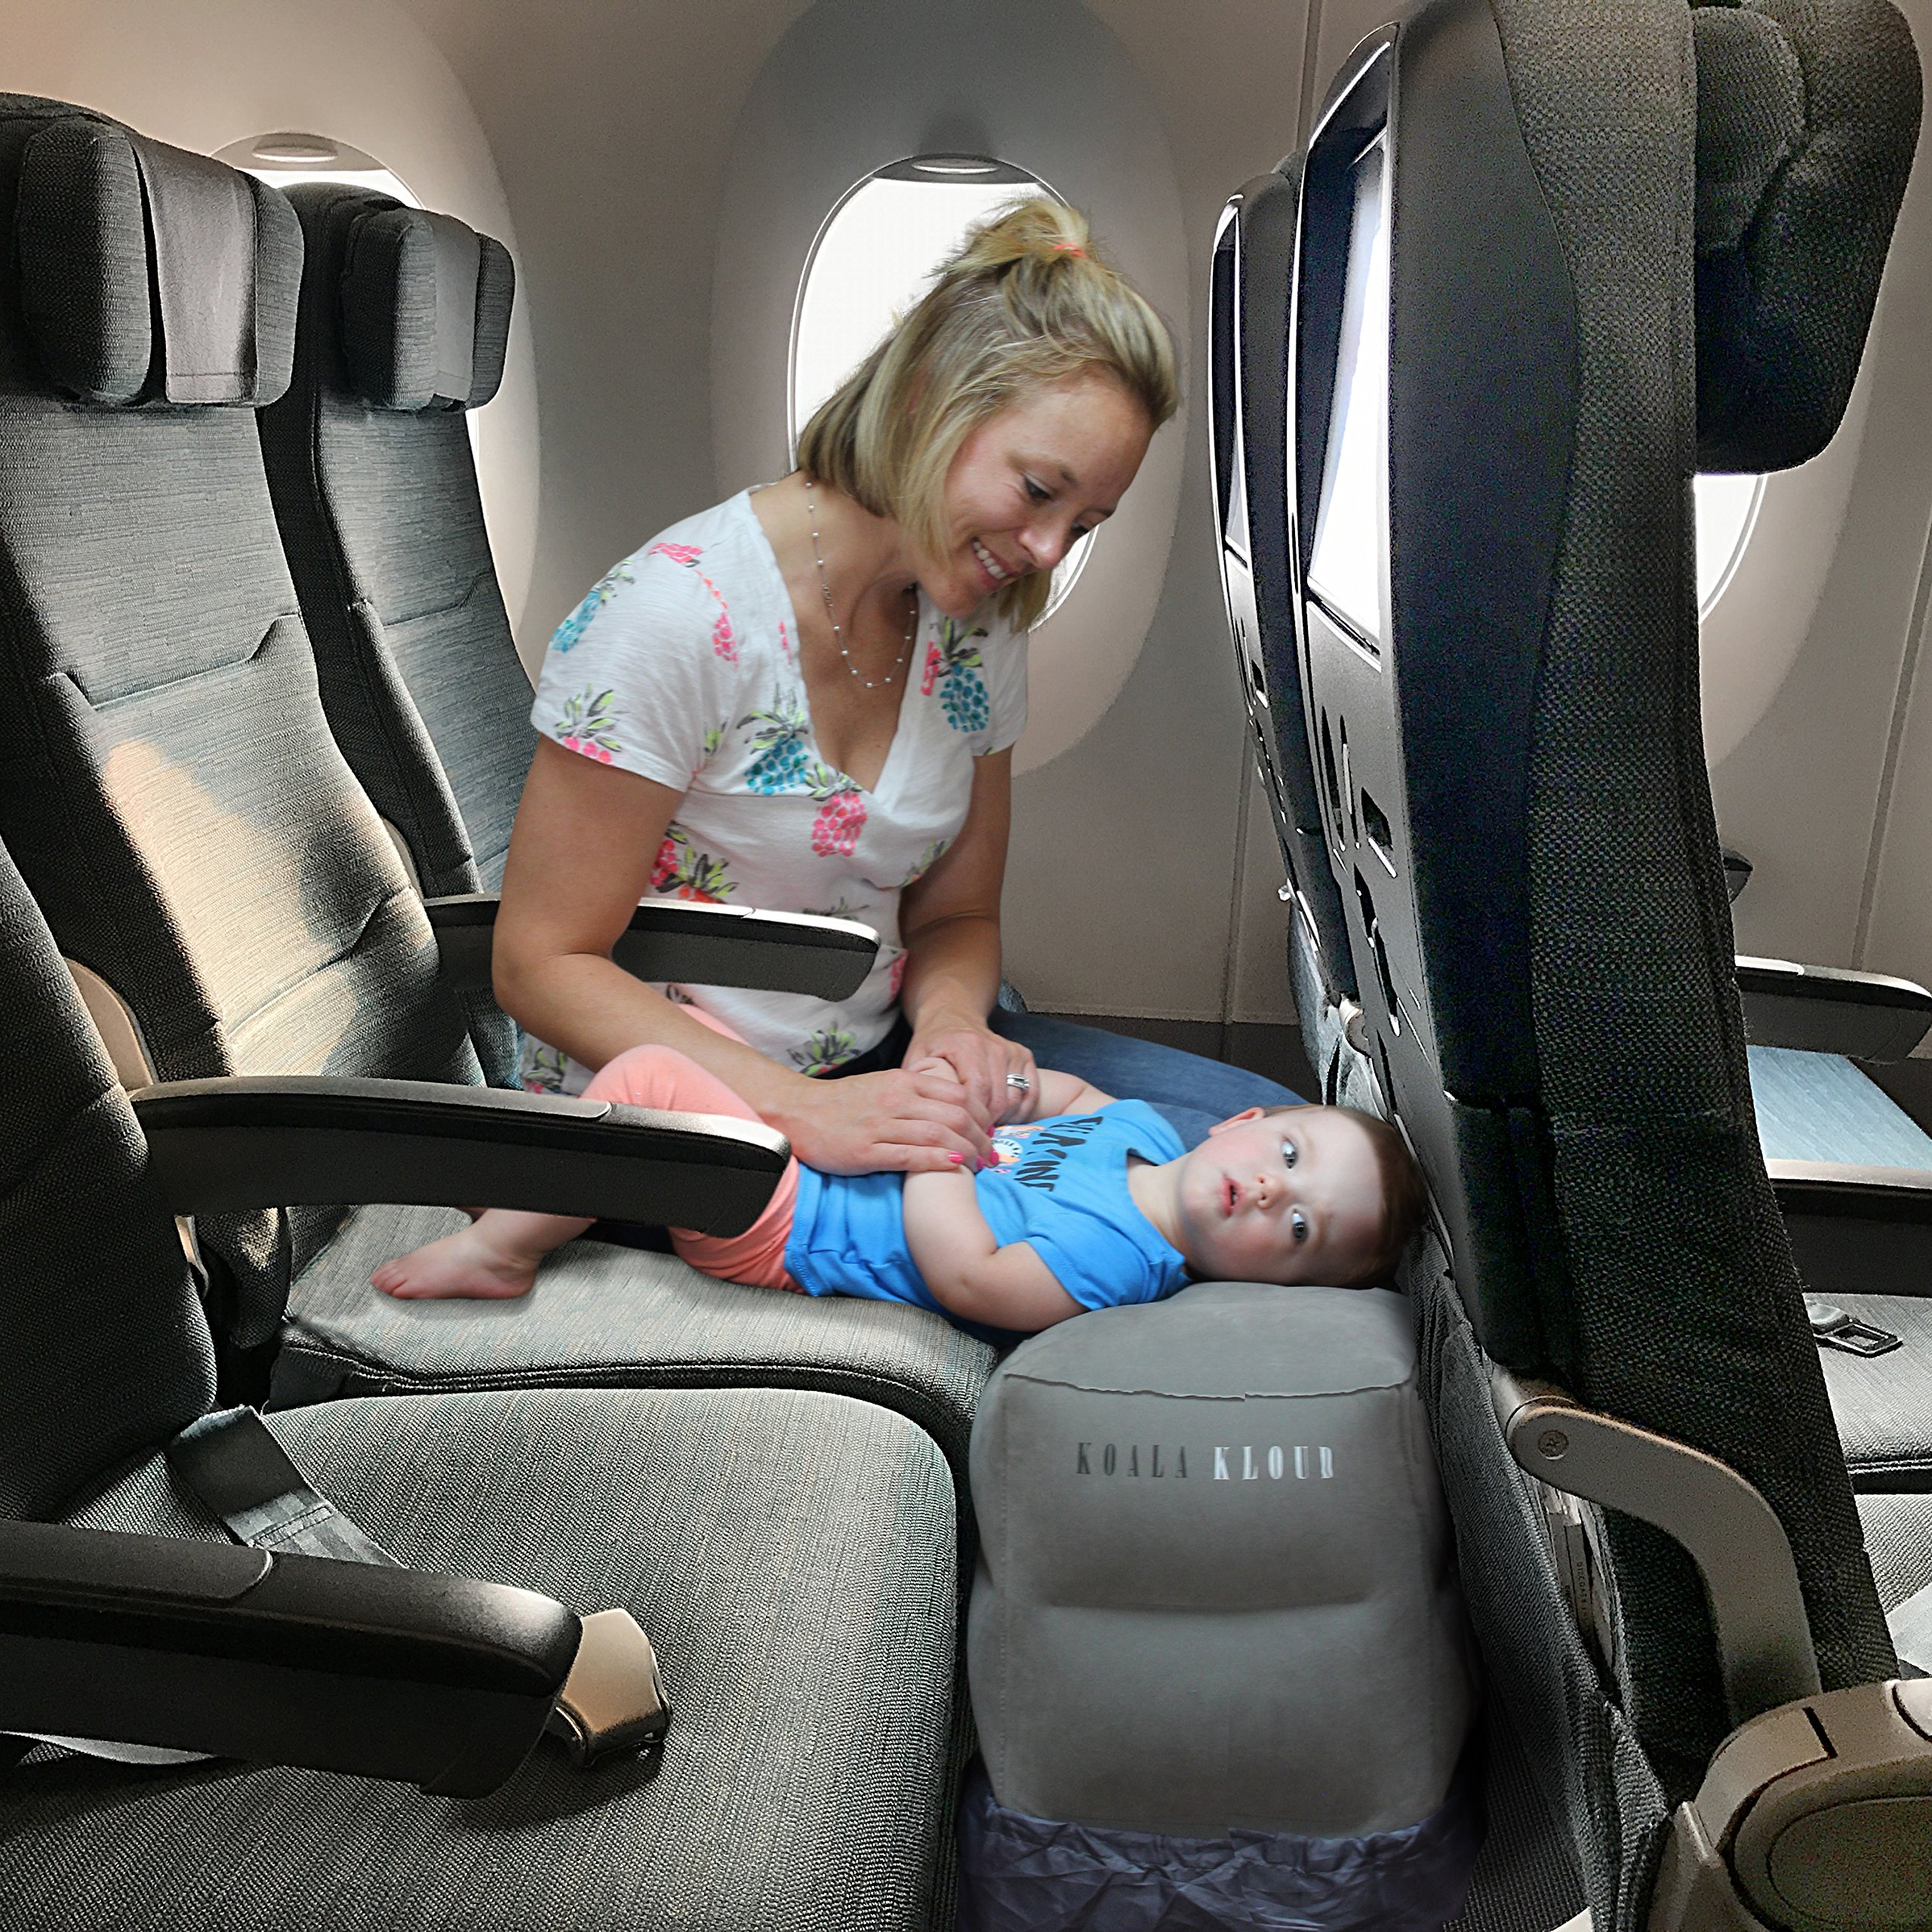 Inflatable Foot Rest Travel Pillow - For Toddlers & Kids, Best Accessory and Gadget for Traveling By Airplane or Car, Use As A Footrest Stool Under Office Desk, Fly With Your Legs Up - By Koala Kloud by Koala Kloud (Image #5)